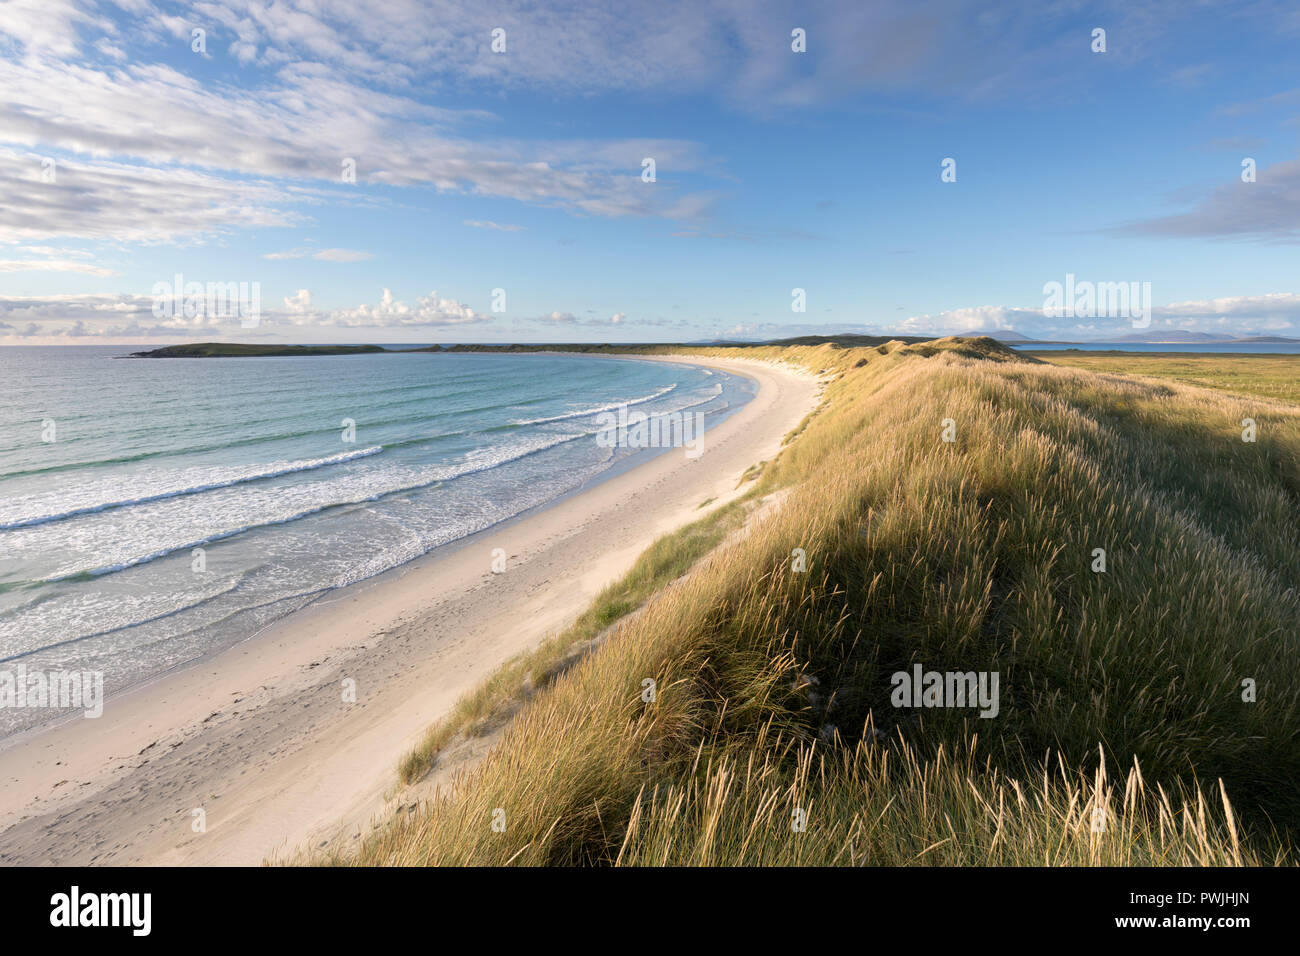 Traigh Iar beach, North Uist, Outer Hebrides, Scotland, UK - Stock Image